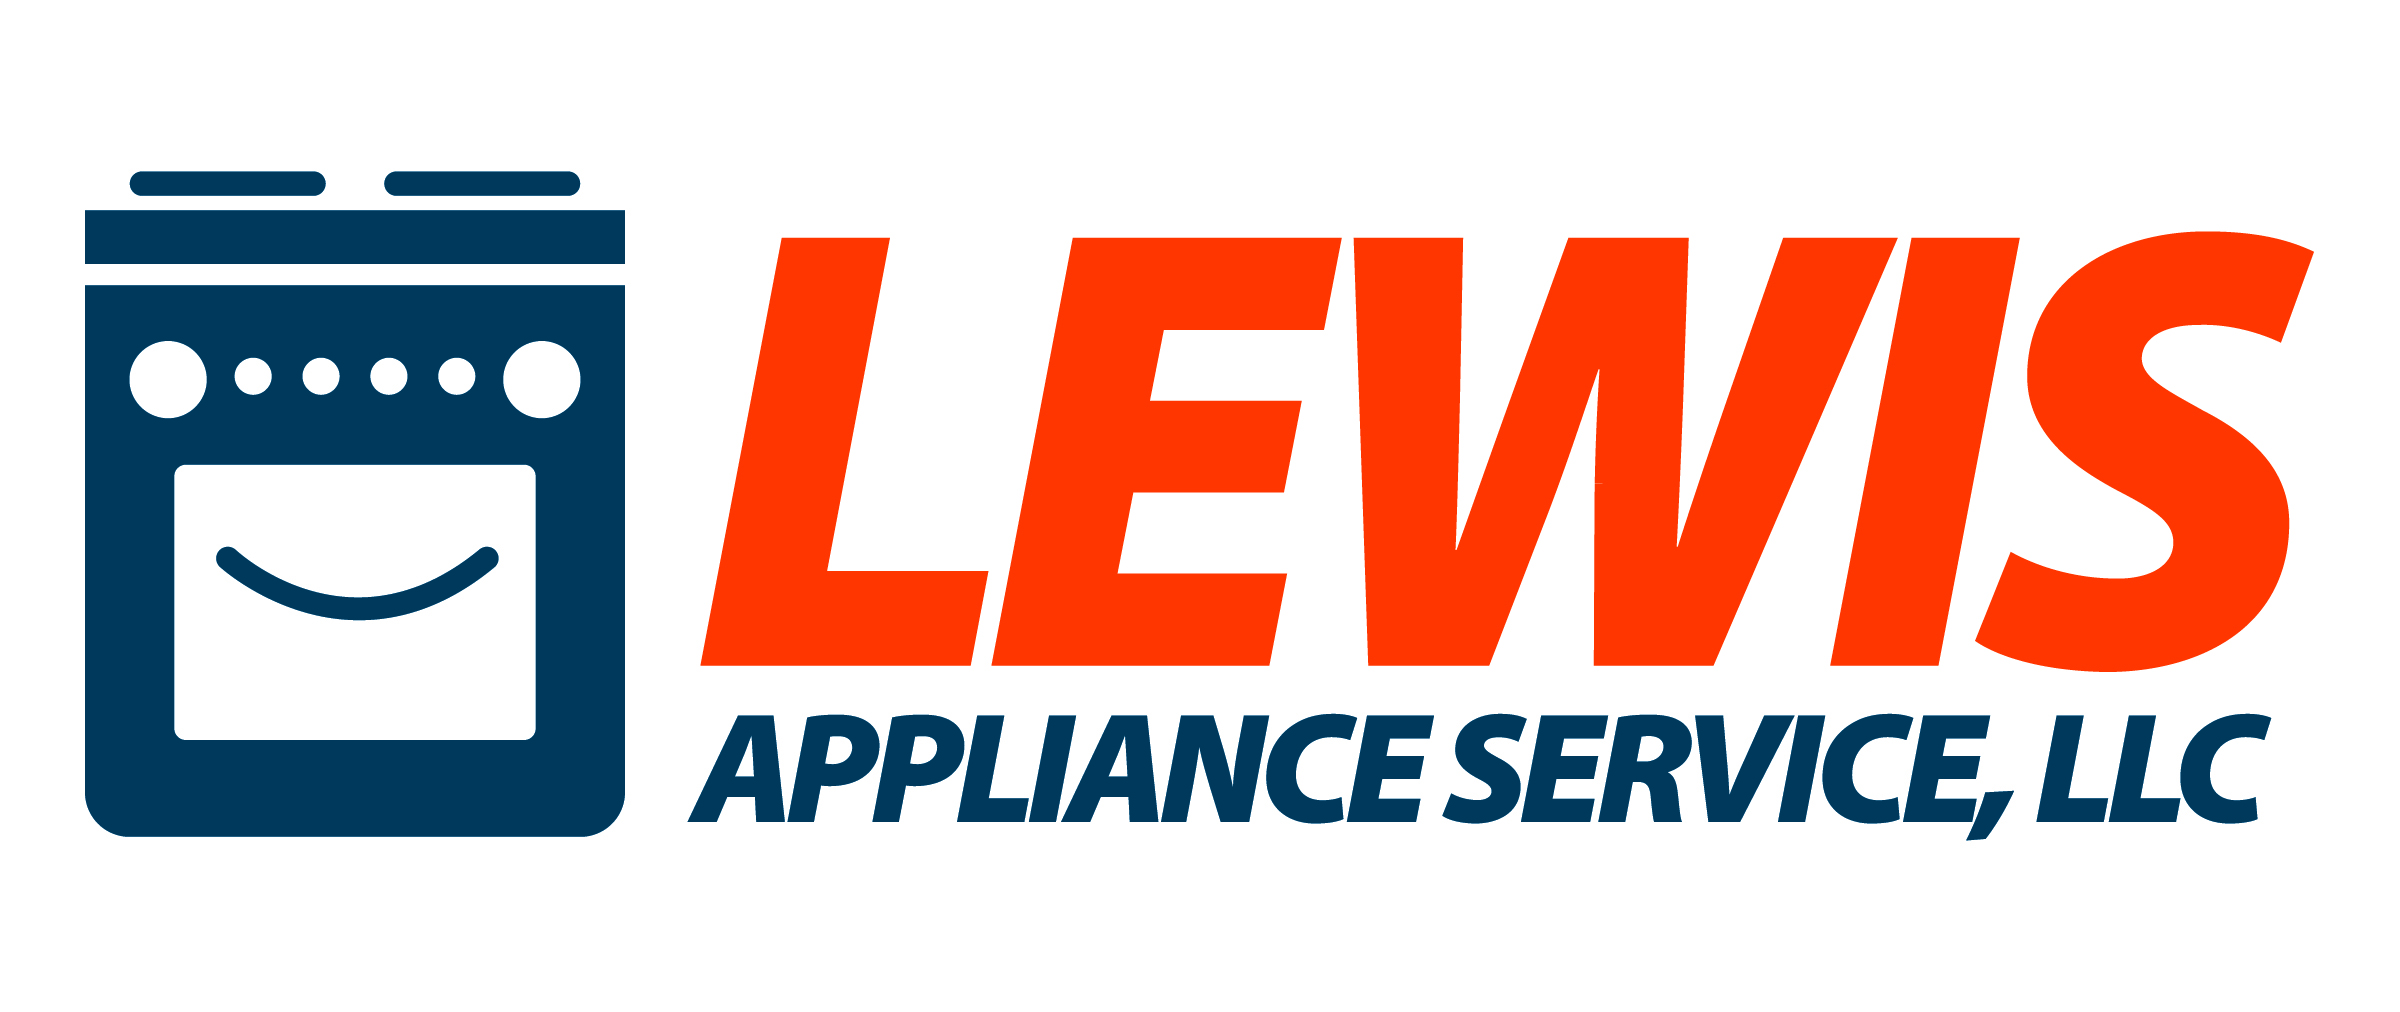 Appliance Repair & Service in  Warren, PA,   Russell, PA, Jamestown, NY, Lakewood, NY, Ashville, NY, Bemus Point, NY, Mayville, NY, Fredonia, NY, Dunkirk, NY, Kane, PA, Corry, PA, and everywhere in between.